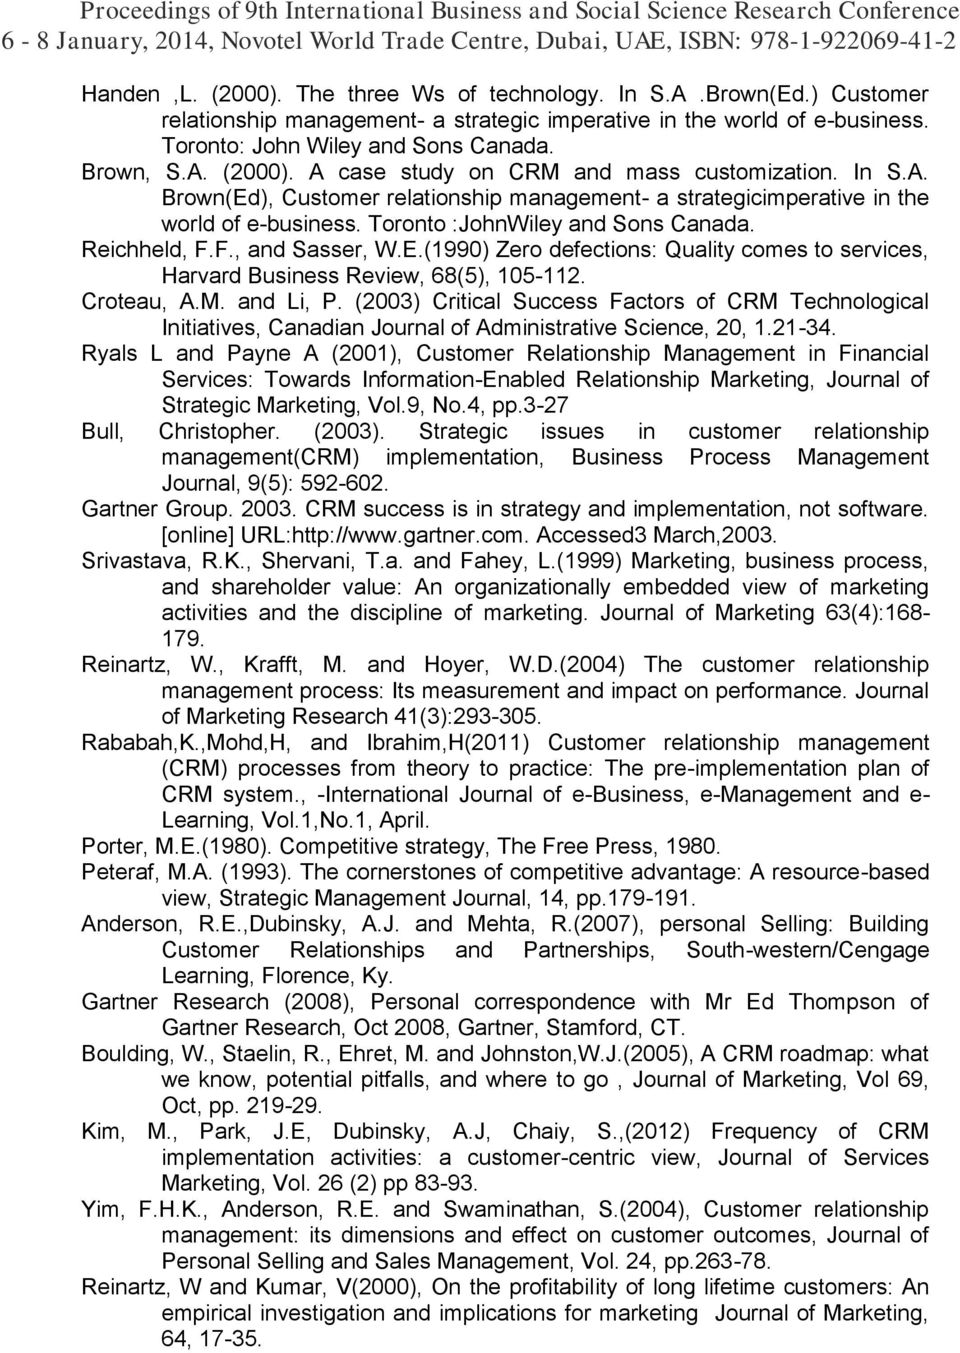 Croteau, A.M. and Li, P. (2003) Critical Success Factors of CRM Technological Initiatives, Canadian Journal of Administrative Science, 20, 1.21-34.